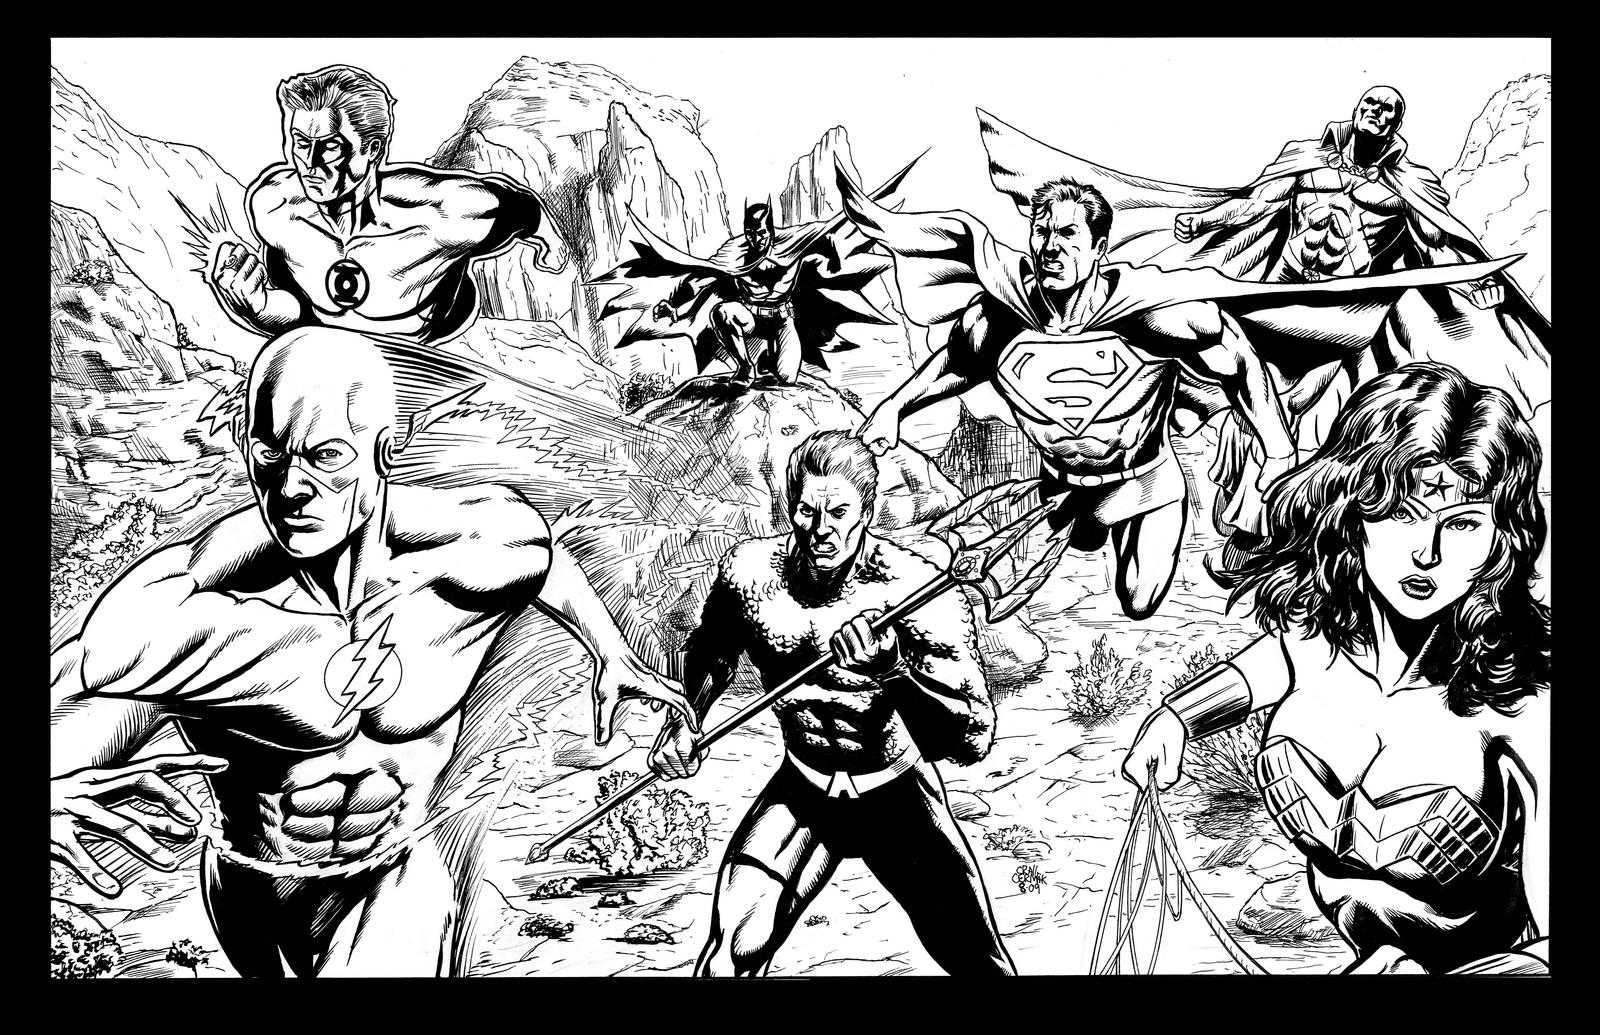 Printable coloring pages justice league - Justice League America By Craigcermak Justice League America By Craigcermak